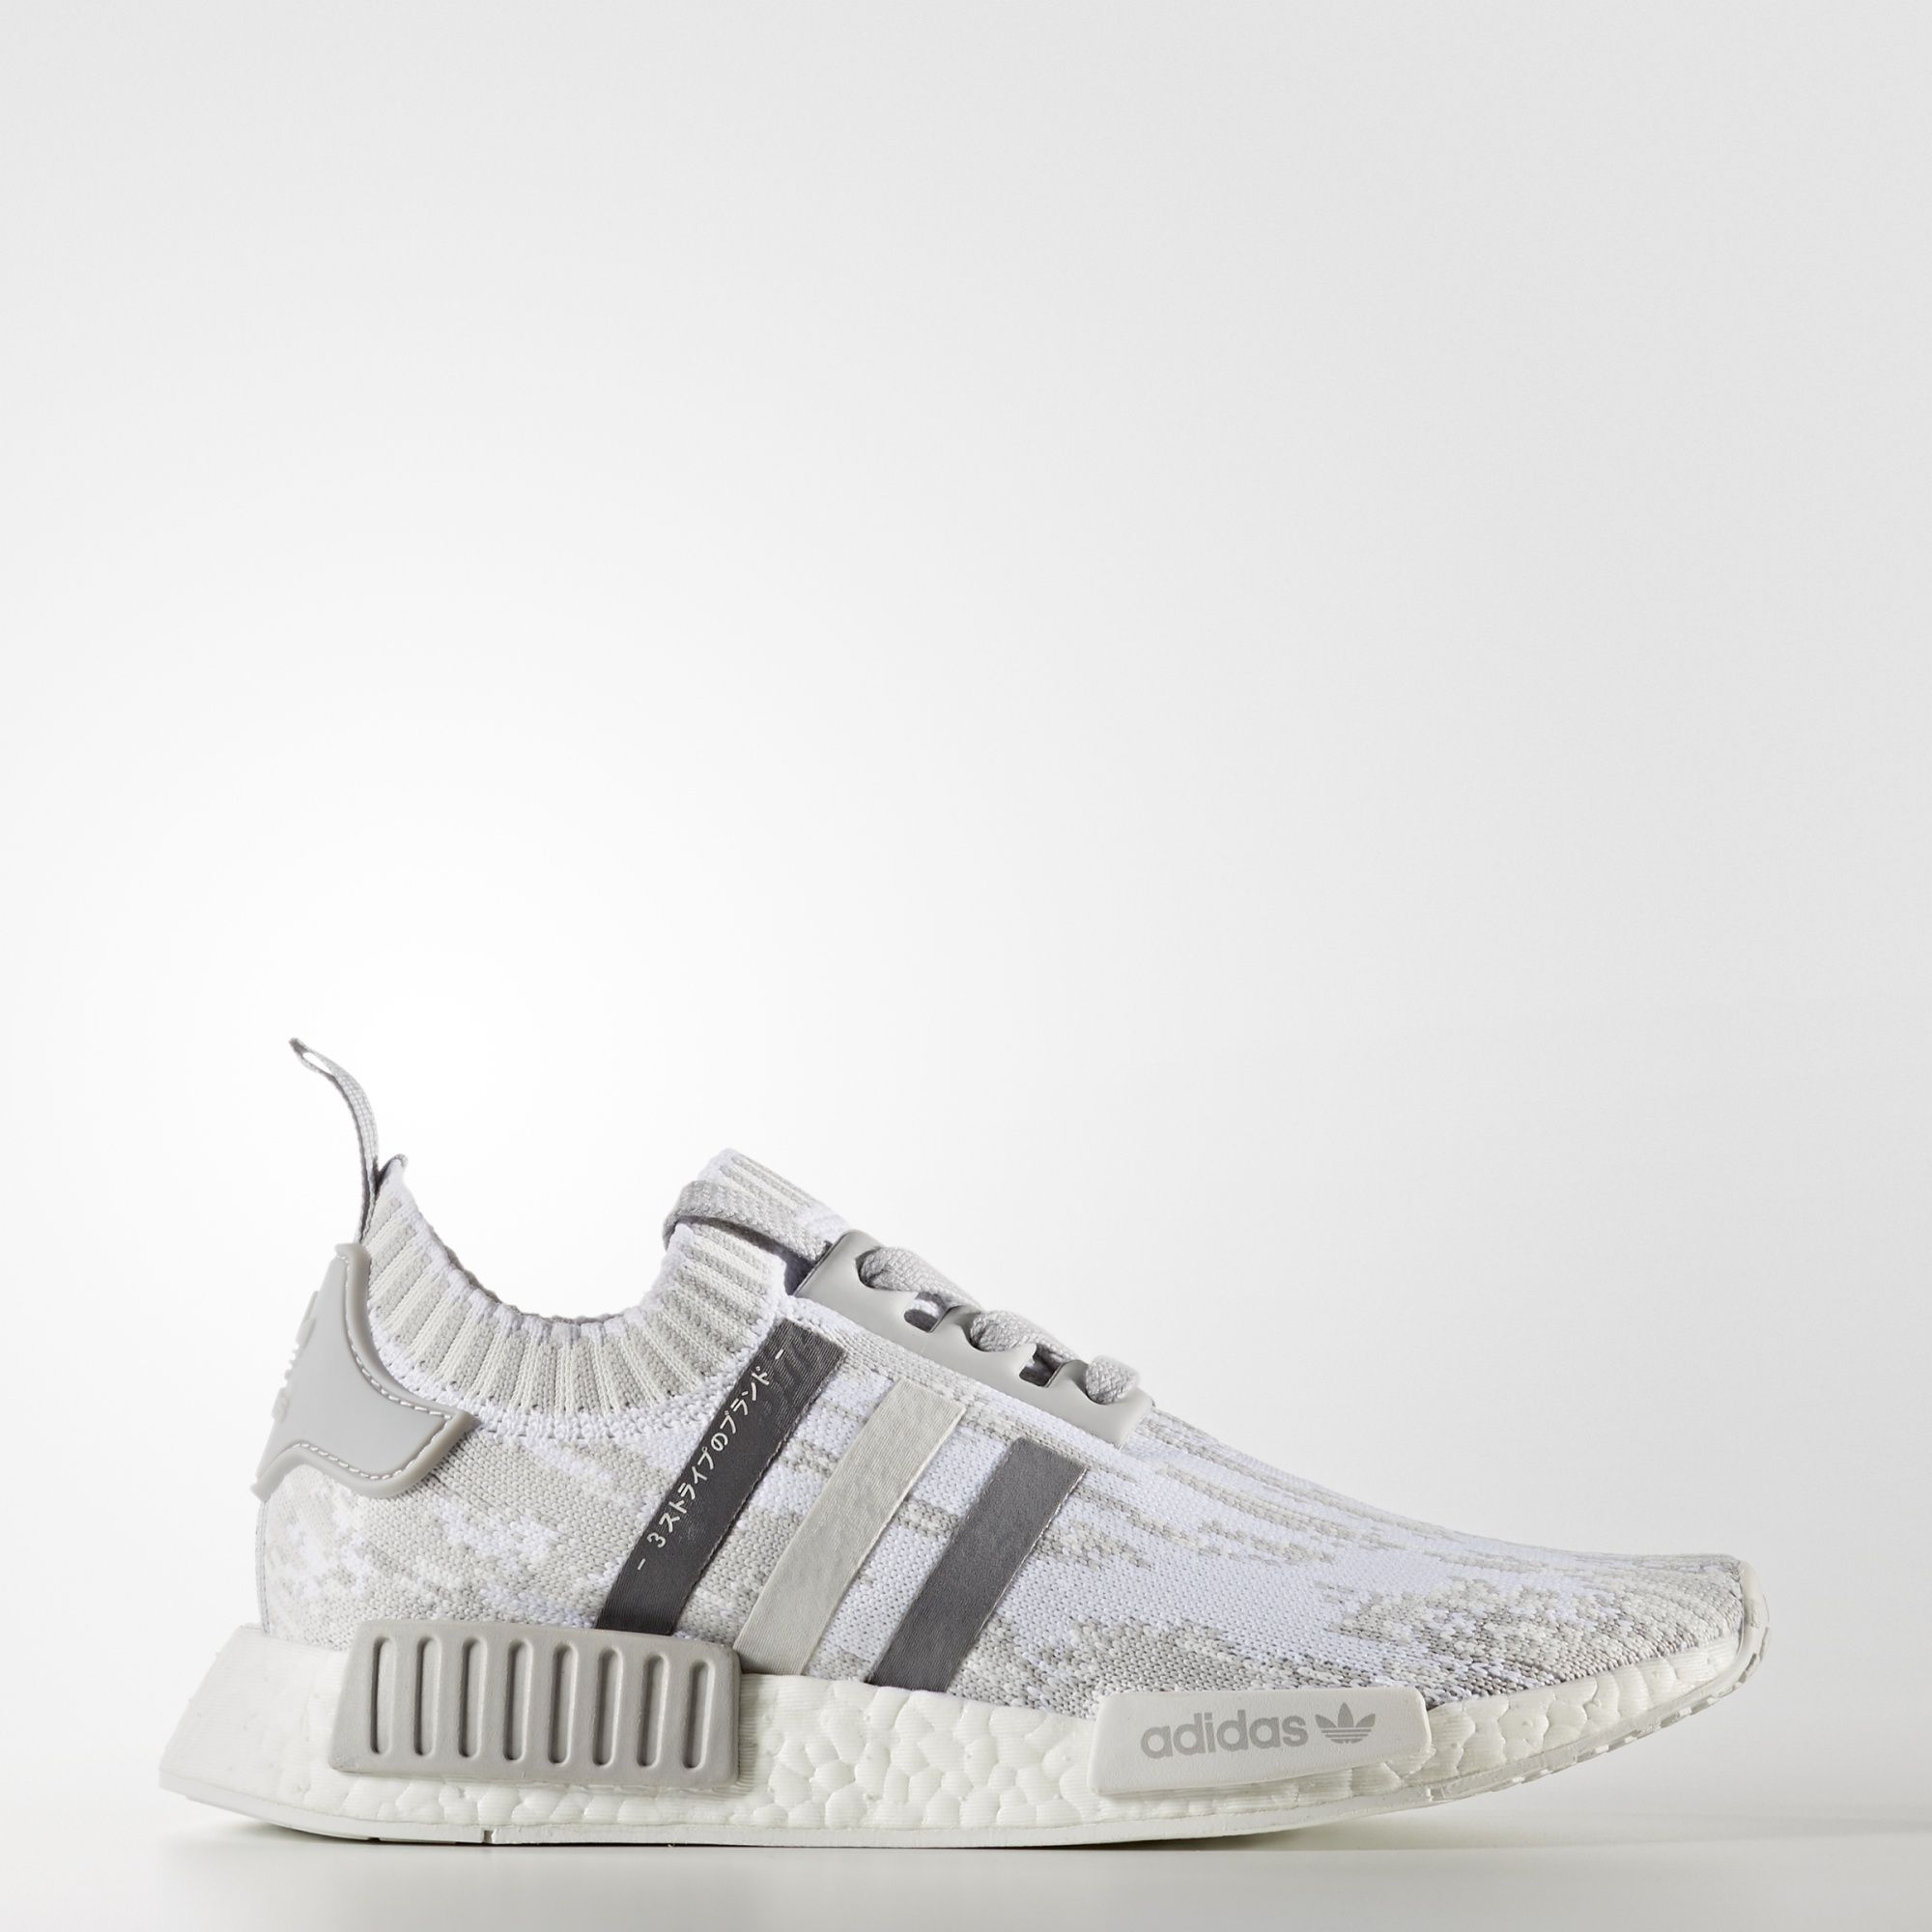 NMD R1 Primeknit Shoes | adidas US